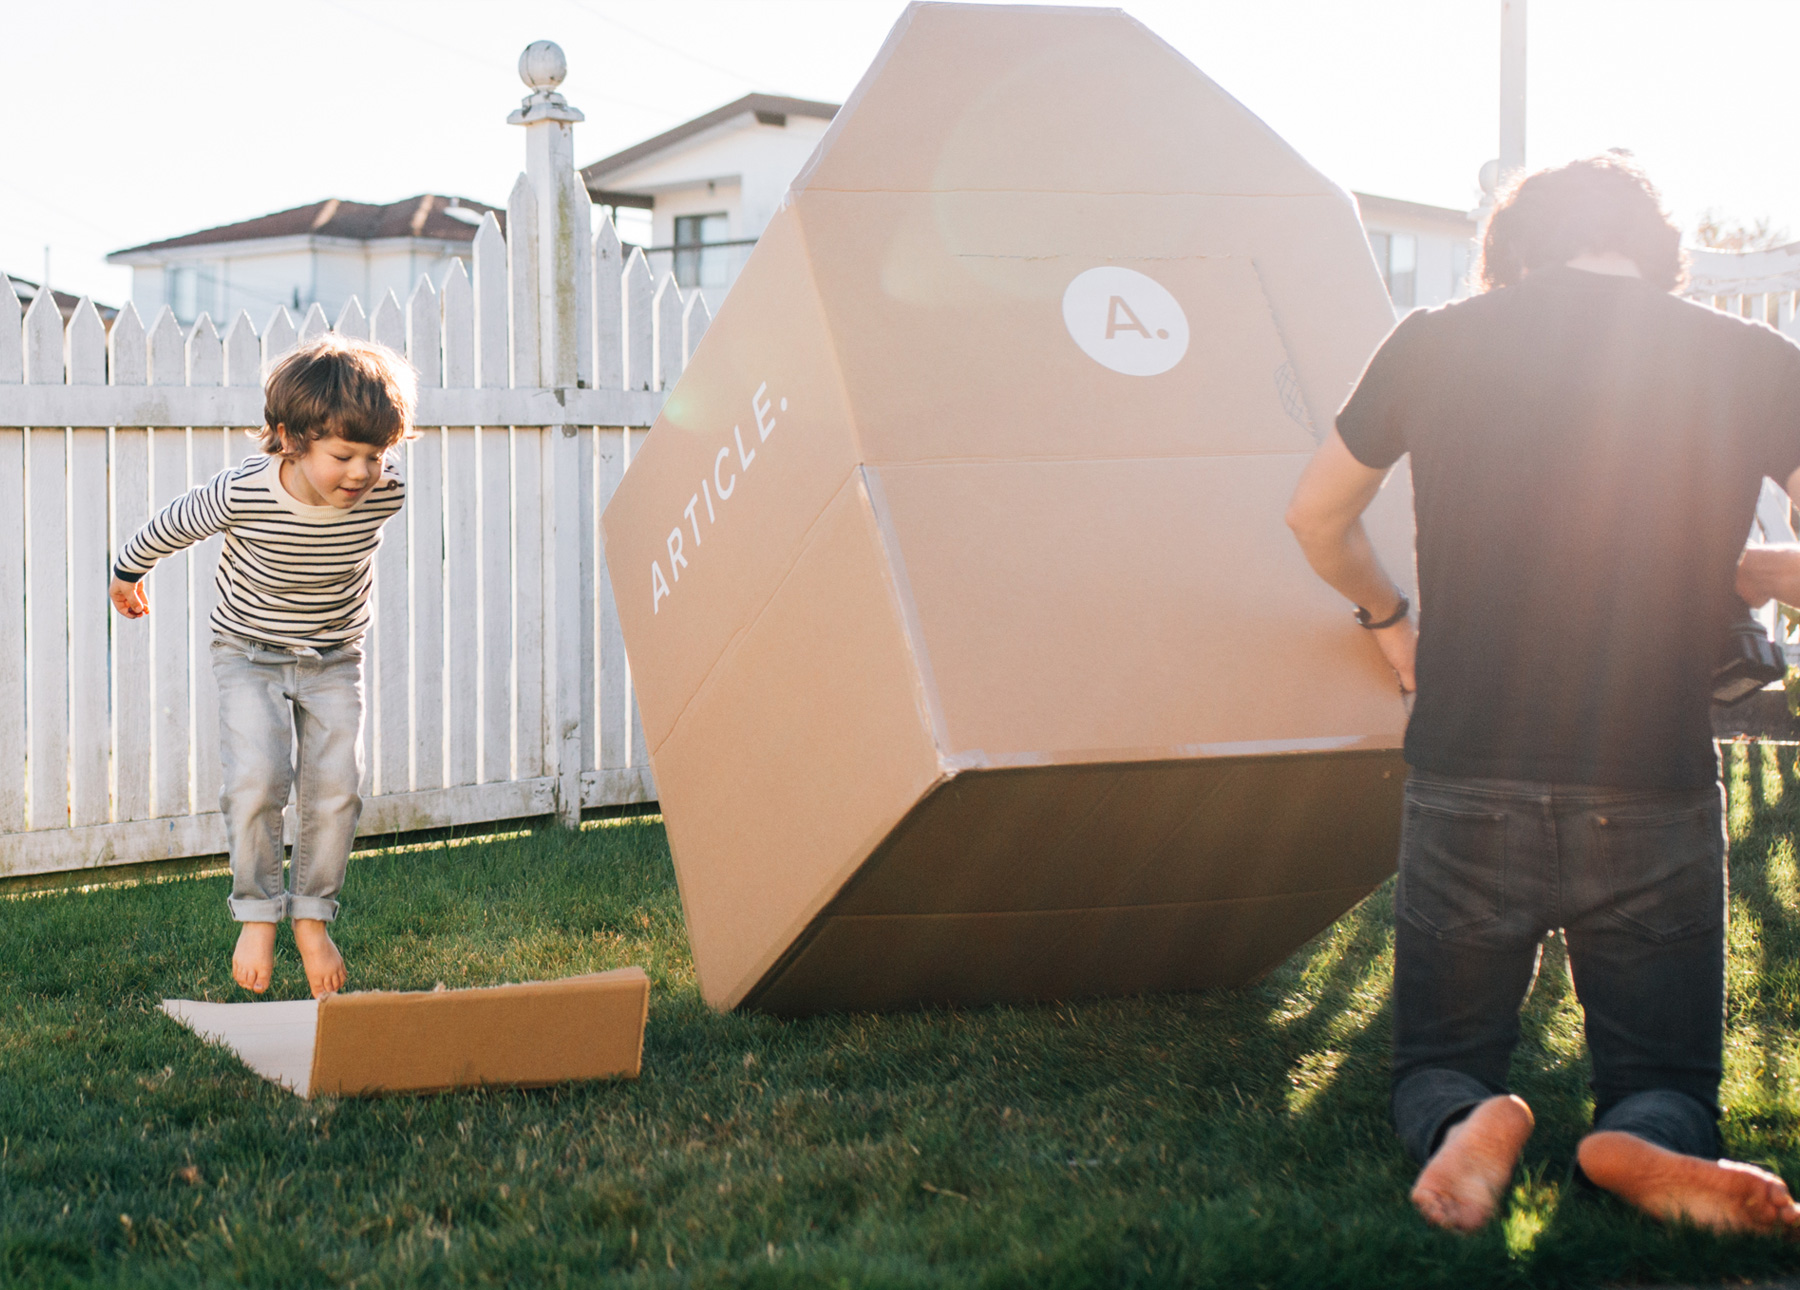 A father and son work together to create a cardboard box fort